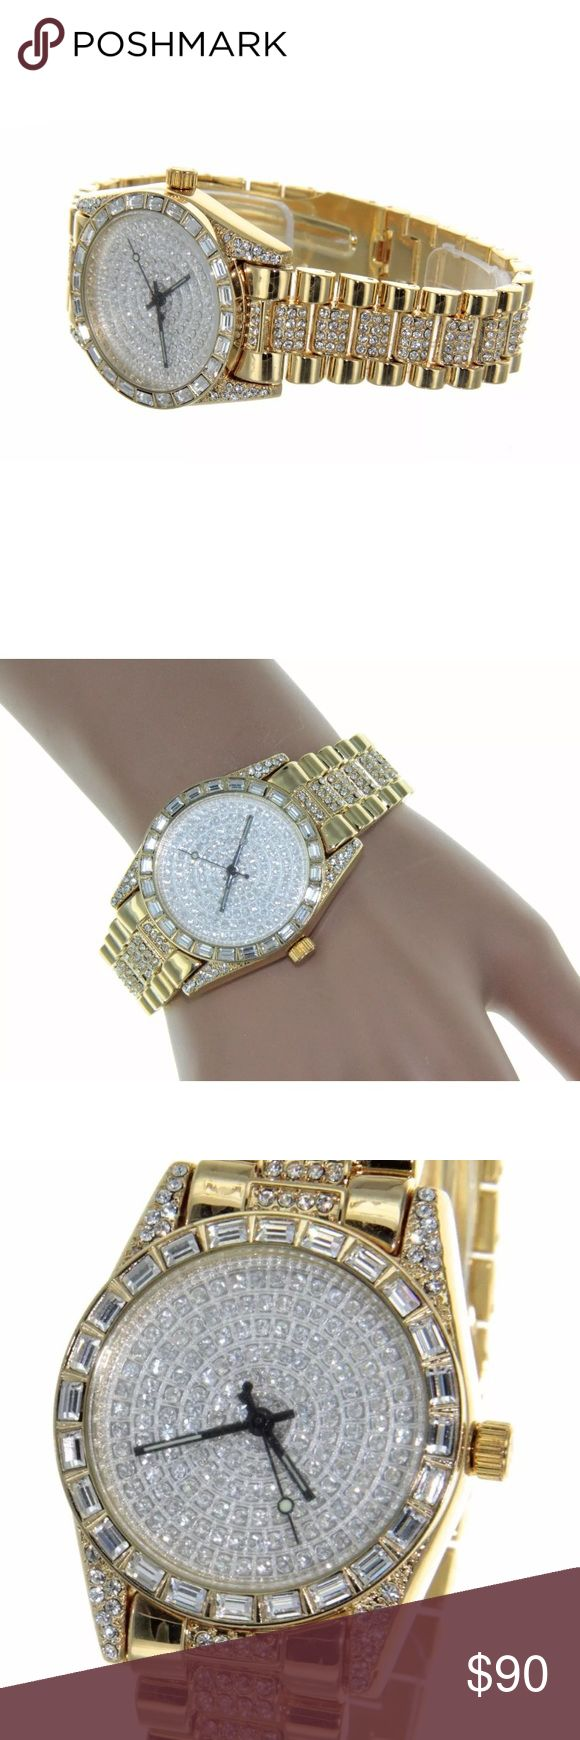 """NEW Womens Luxury Watch Iced Out Crystal 10K Gold Women's Luxury Gold Watch Iced Out - Brand New  14K Gold Bezel  Fully Iced out Bezel, Band & Dial    Description:           * Case size is approximately 1-3/8"""" in Diameter           * Case size is approximately 1/4"""" Thick           * High quality movement           * It will fit up 8"""" Wrist           * Stainless steel back - 14K Gold Finish            * Made by Geneva            * HG-31 Accessories Watches"""